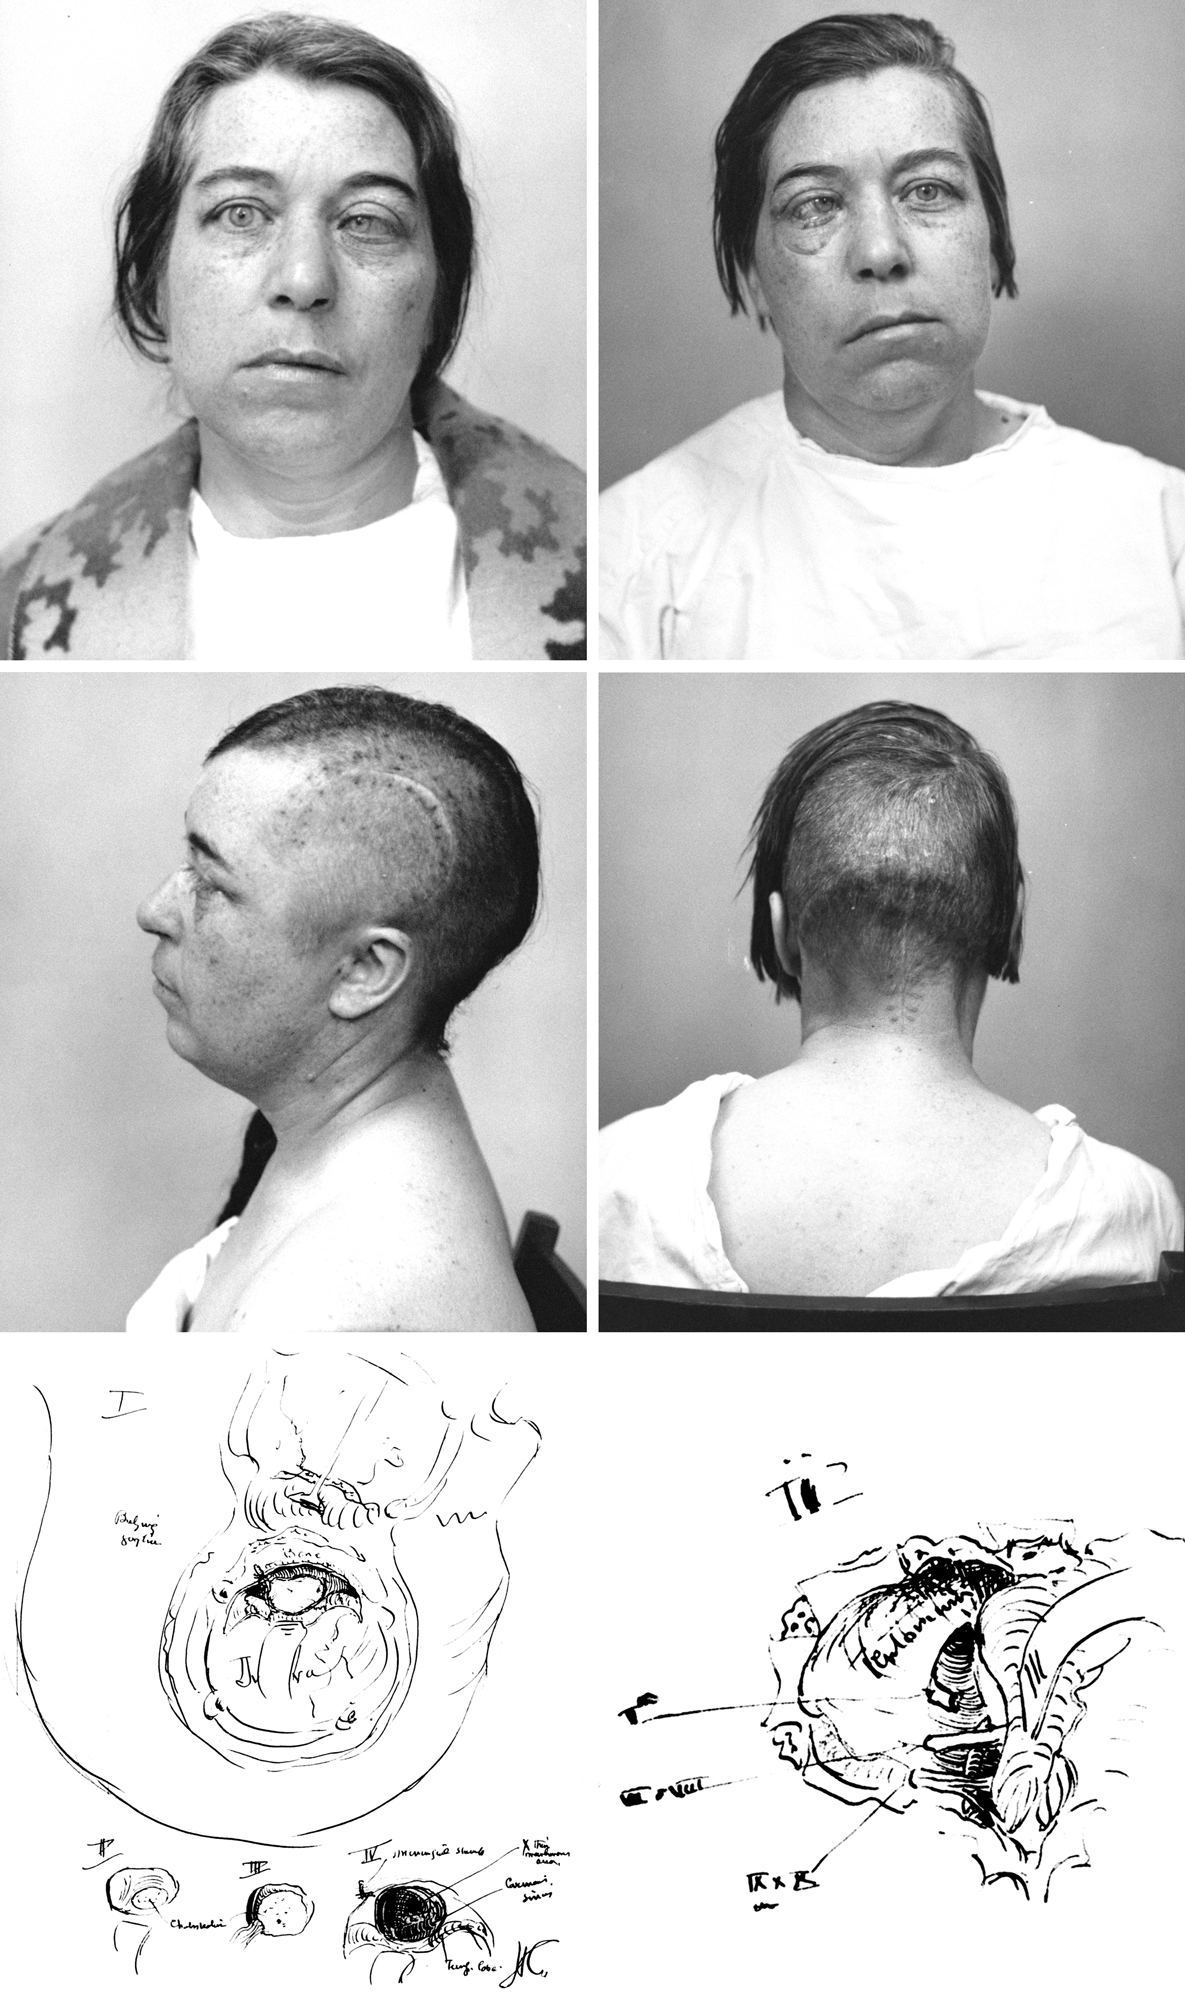 Figure 1: This patient of Harvey Cushing's underwent a two-stage operation (subtemporal and suboccipital) for resection of a large petroclival cholesteatoma in 1928. This is likely one of the first cases of Cushing's that demonstrated his technical expertise in handling complex skull base lesions. The upper images depict the patient's preoperative cranial nerve dysfunctions before both operations. The images in the middle row show Cushing's incisions for the staged procedures, and the lower images illustrate his intraoperative findings (images courtesy of the Cushing Brain Tumor Registry at Yale University).